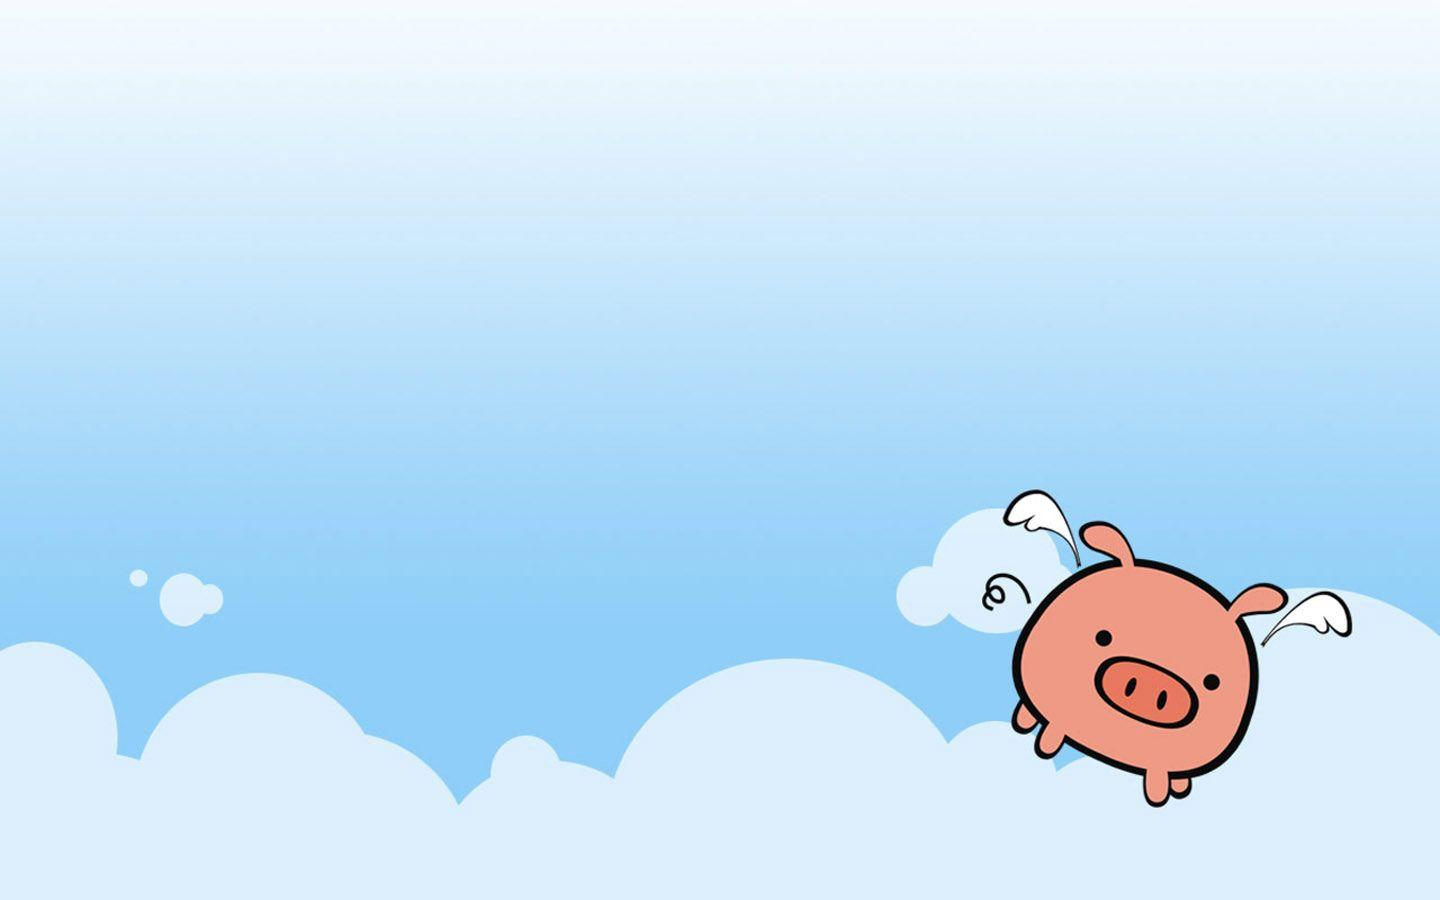 Cute Real Pigs Iphone Wallpaper Wallpapers Pig Cartoon Wallpaper Cave